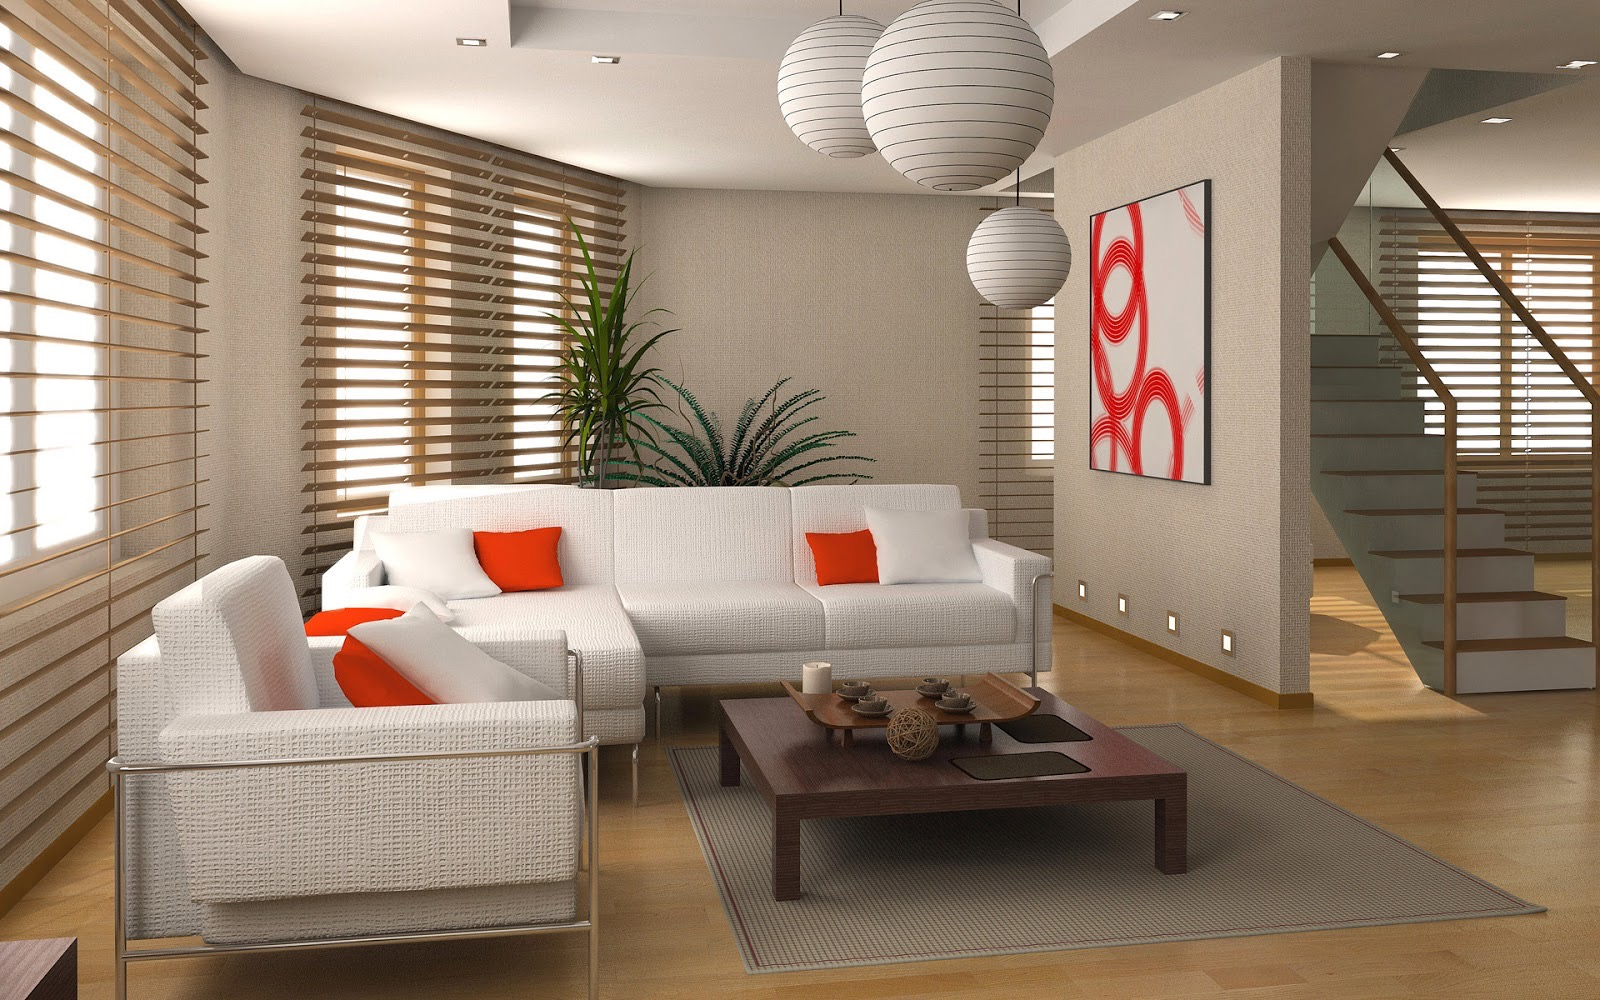 Simple Living Room Interior Design (View 22 of 27)